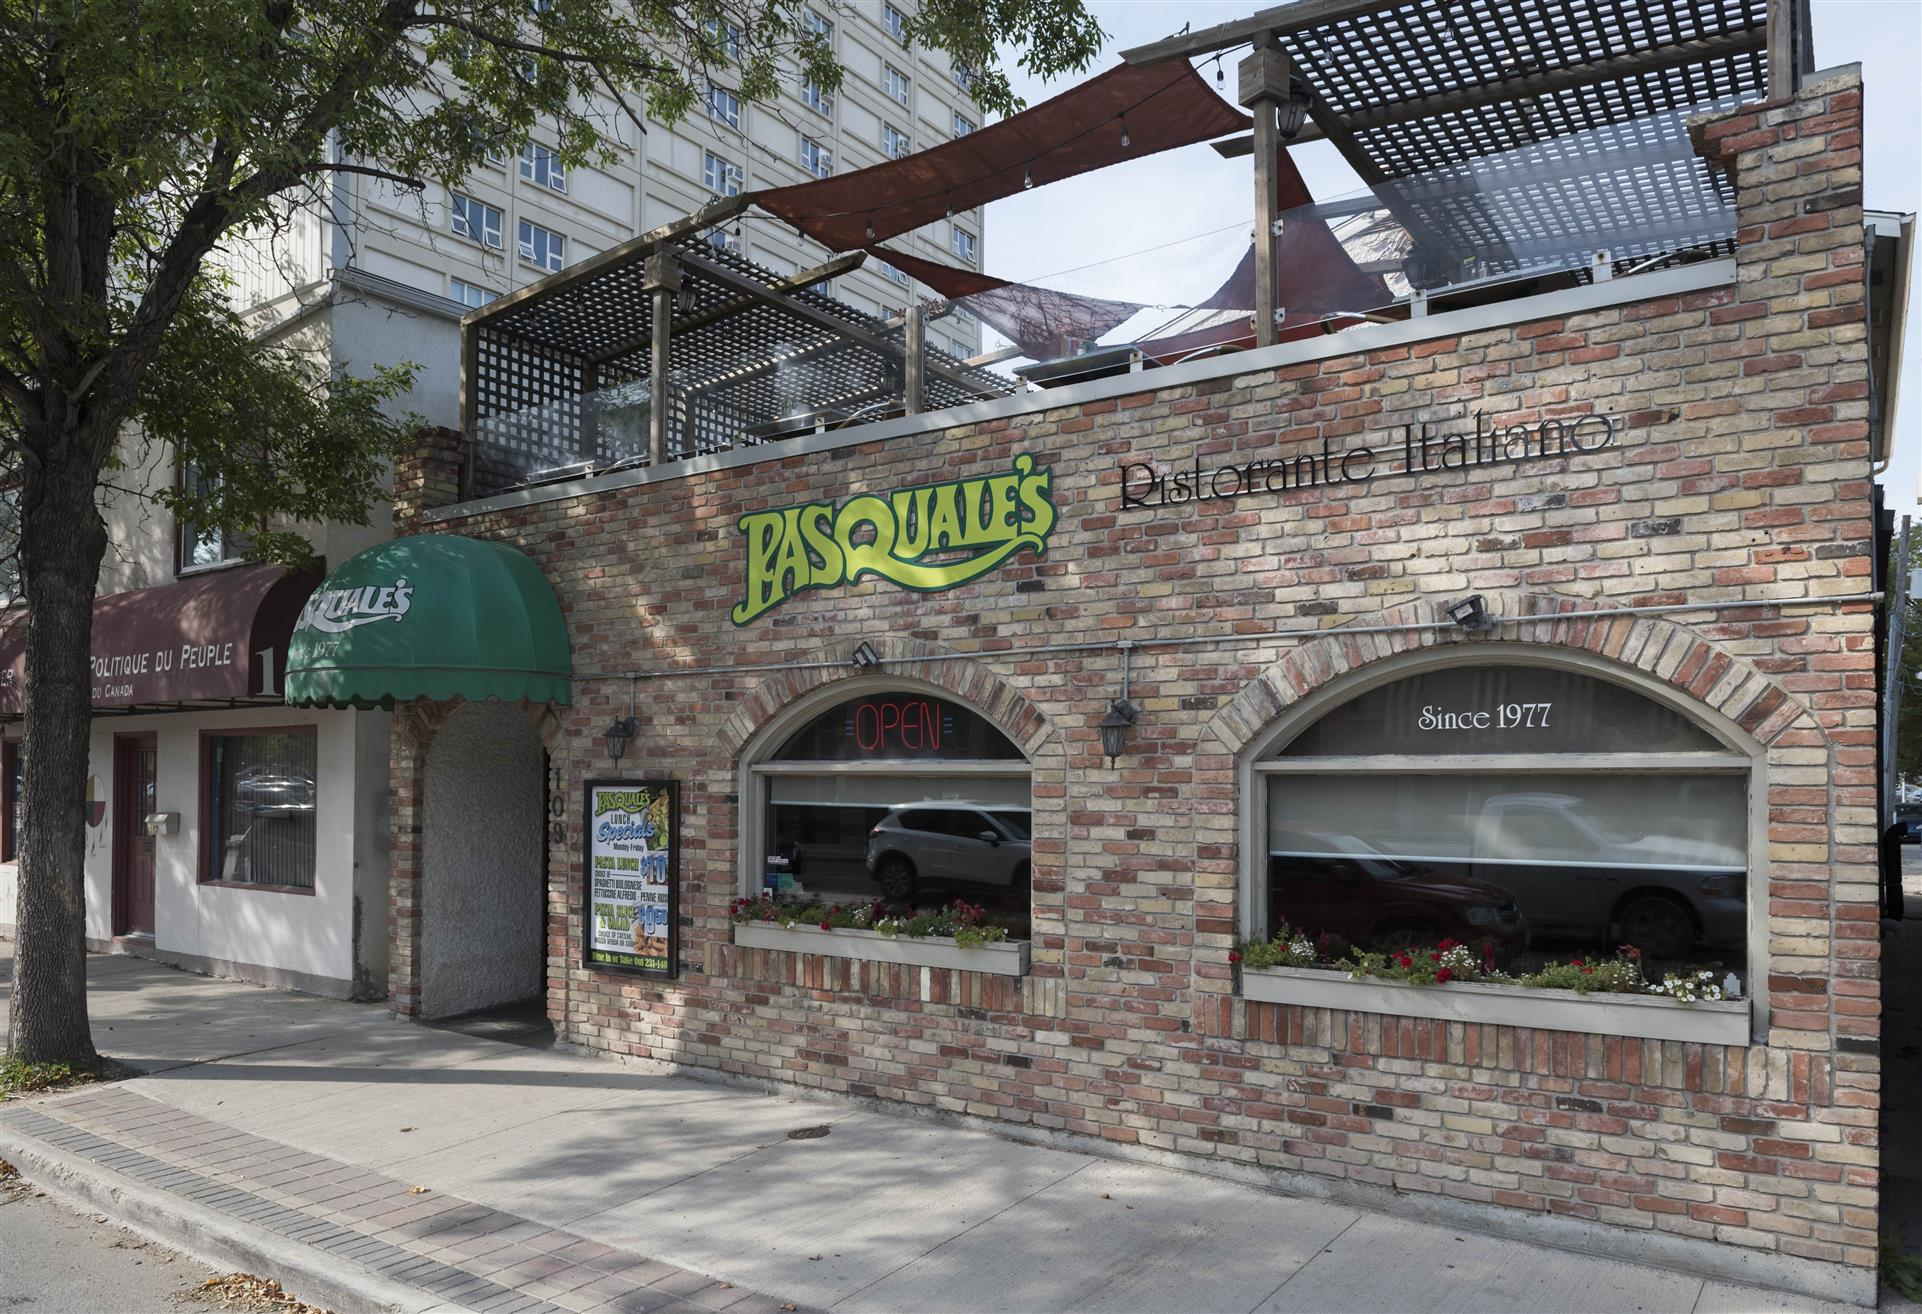 exterior side of pasquale's showcasing the second story eating area